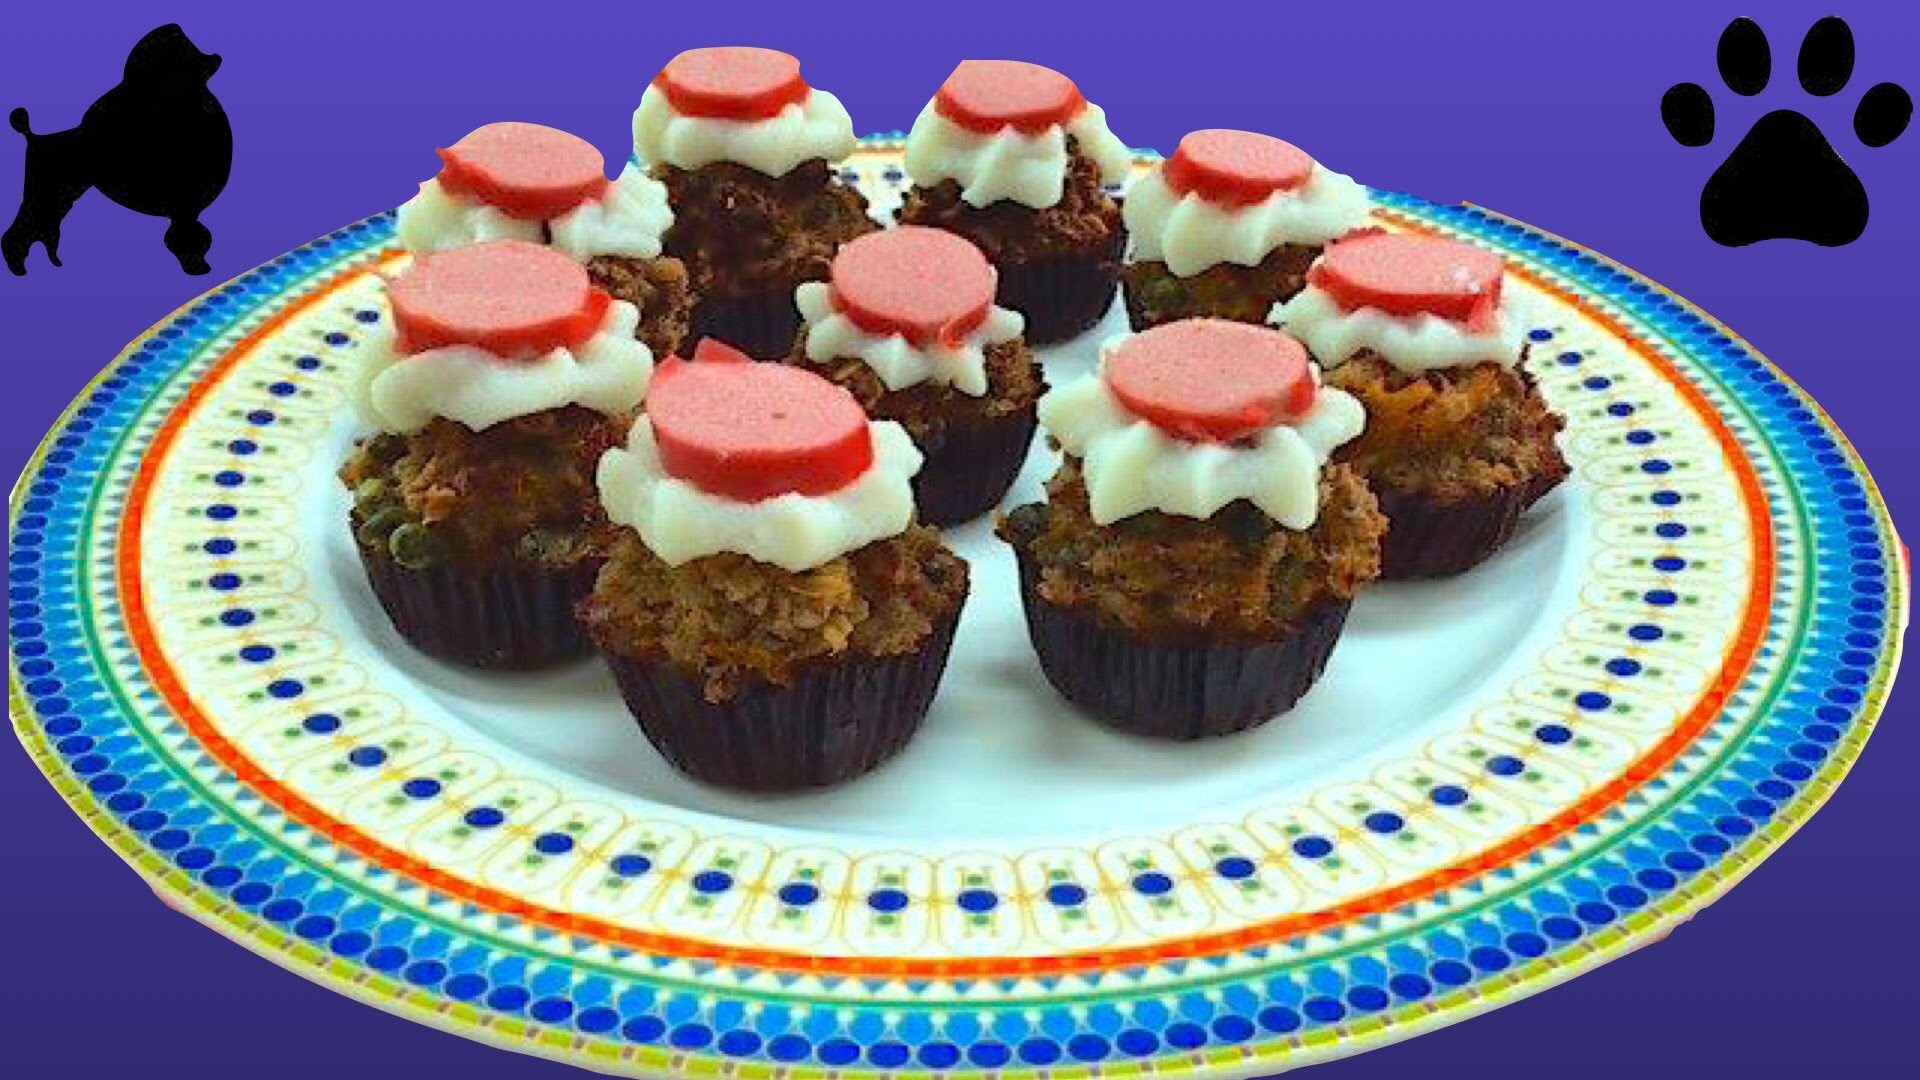 How to make MINI PUPCAKES MEATLOAF CUPCAKES VEGGIE SMUGGLE MUFFINS DIY Dog Food by Cooking For Dogs